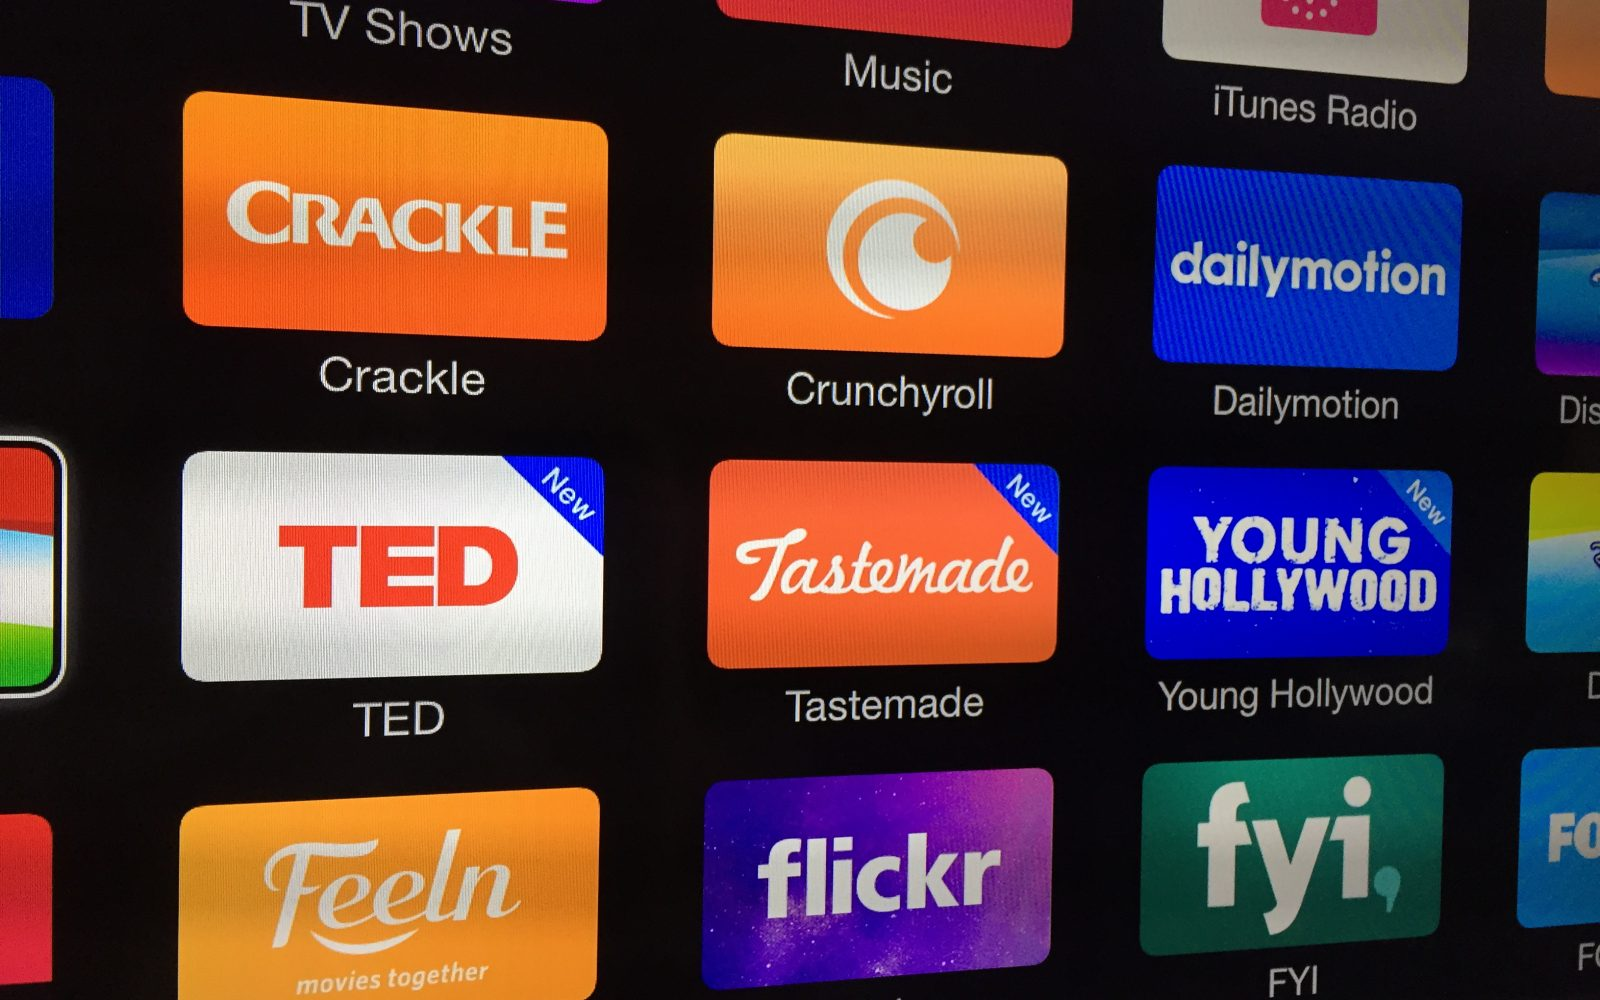 Apple Adds Ted Talks Tastemade And Young Hollywood Apps